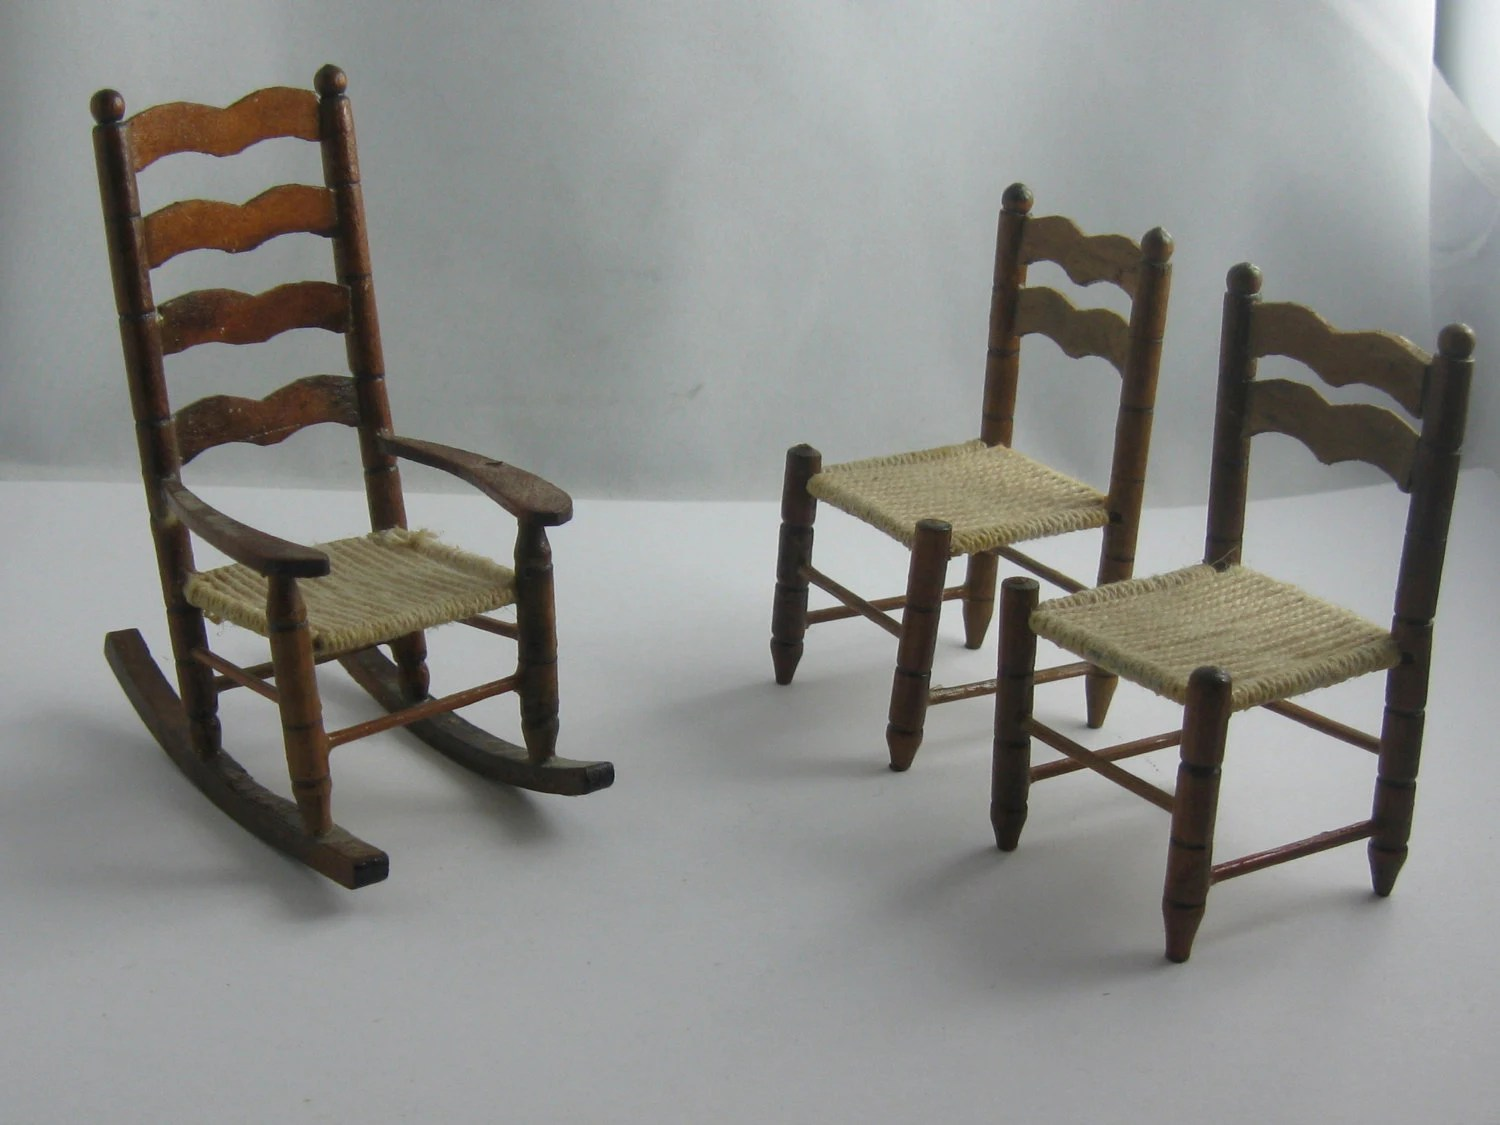 mini rocking chair the bean bag miniature dollhouse furniture a and 2 chairs